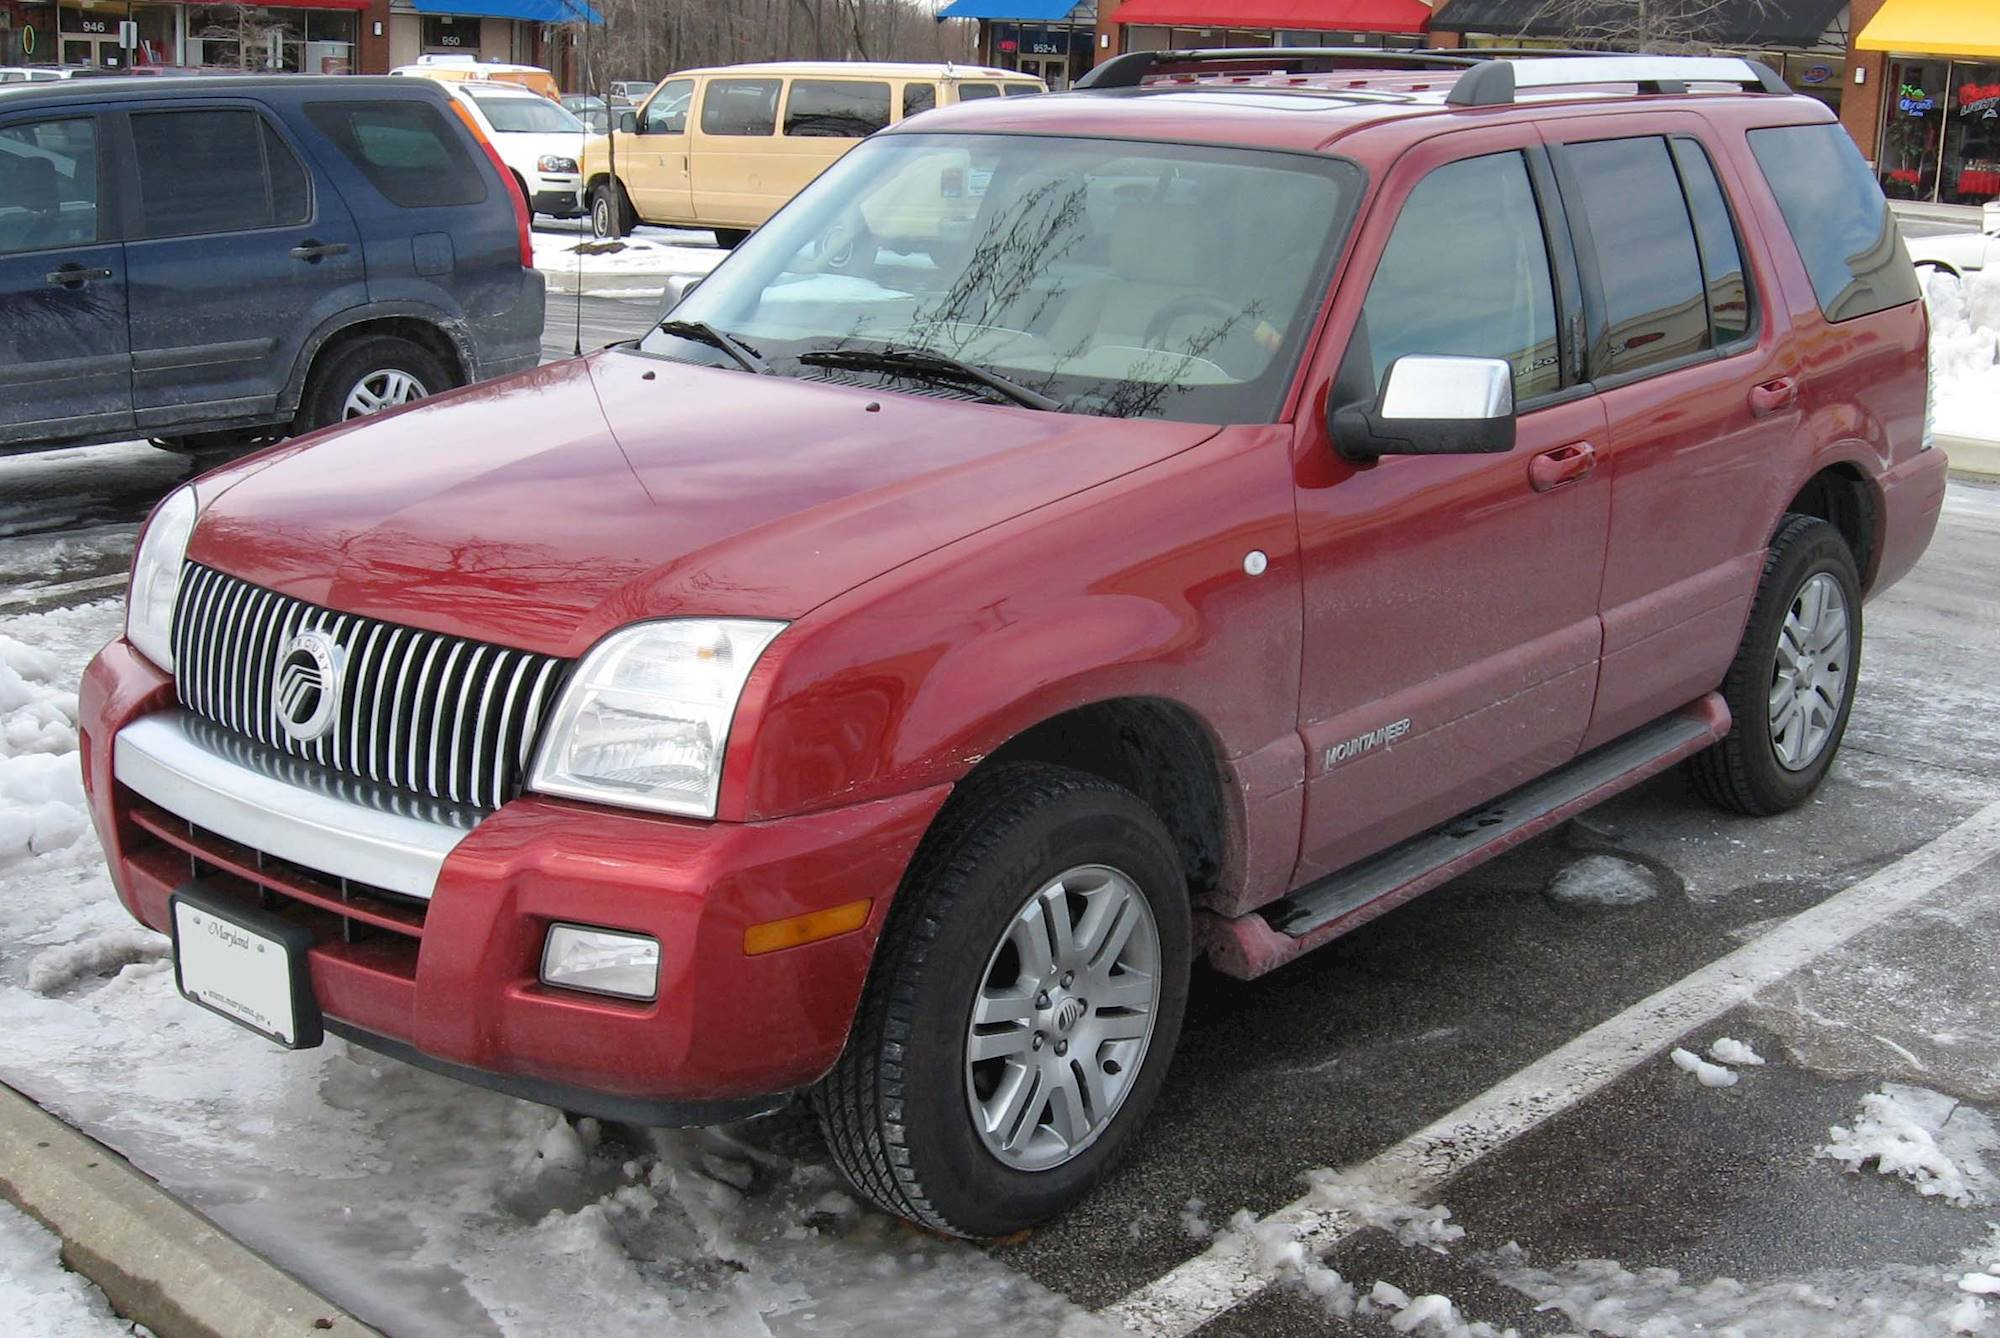 1998 mercury mountaineer 5.0 specs